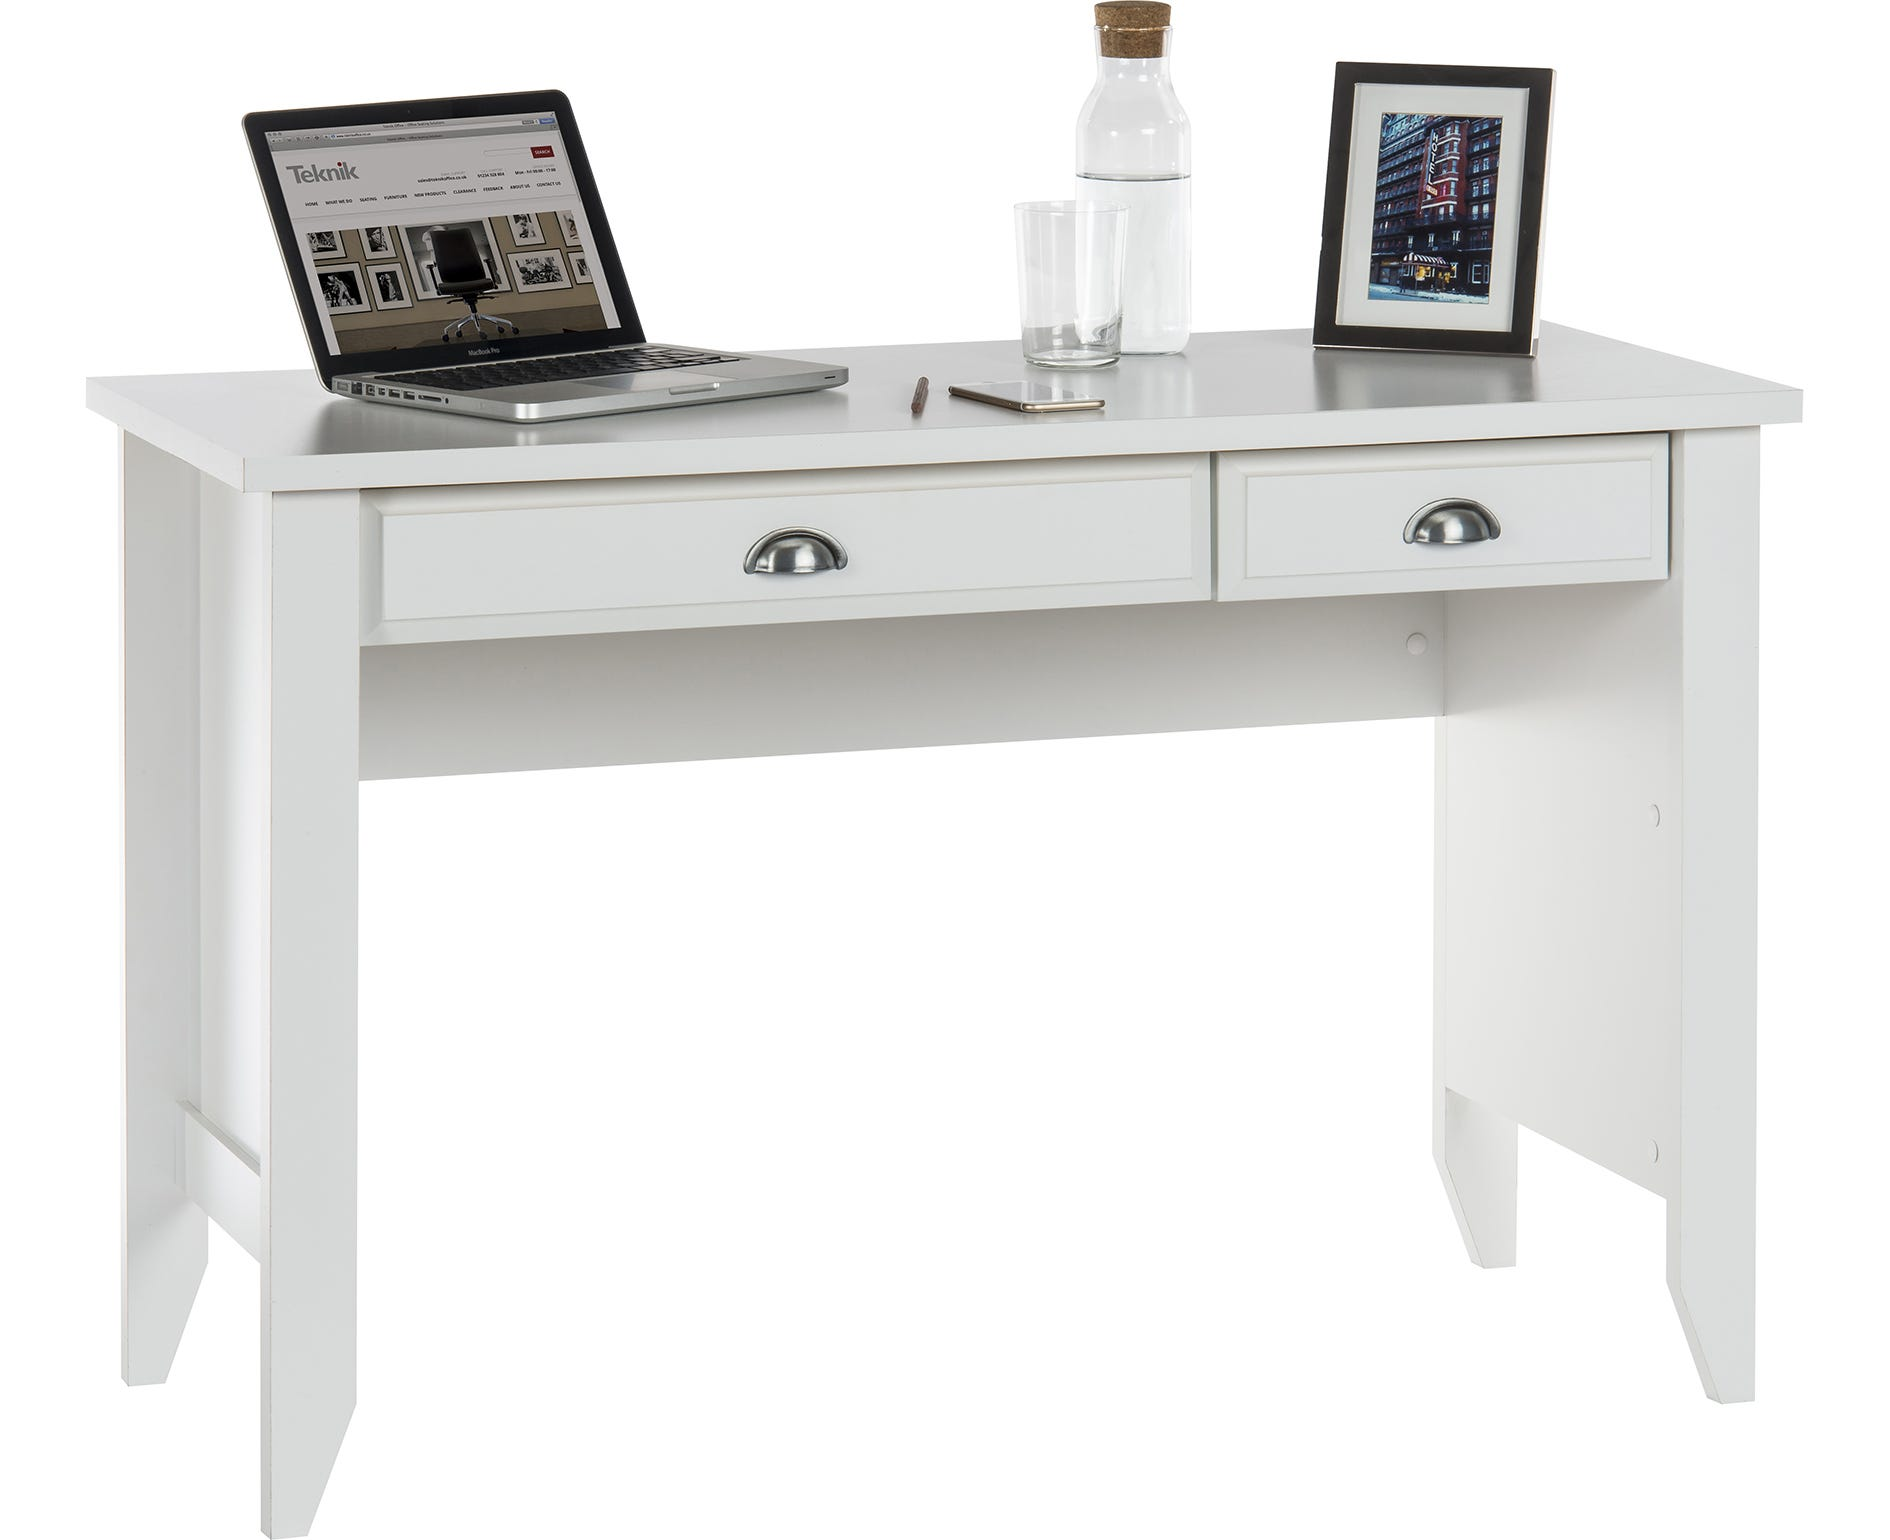 Home Office Laptop Desk, Soft White